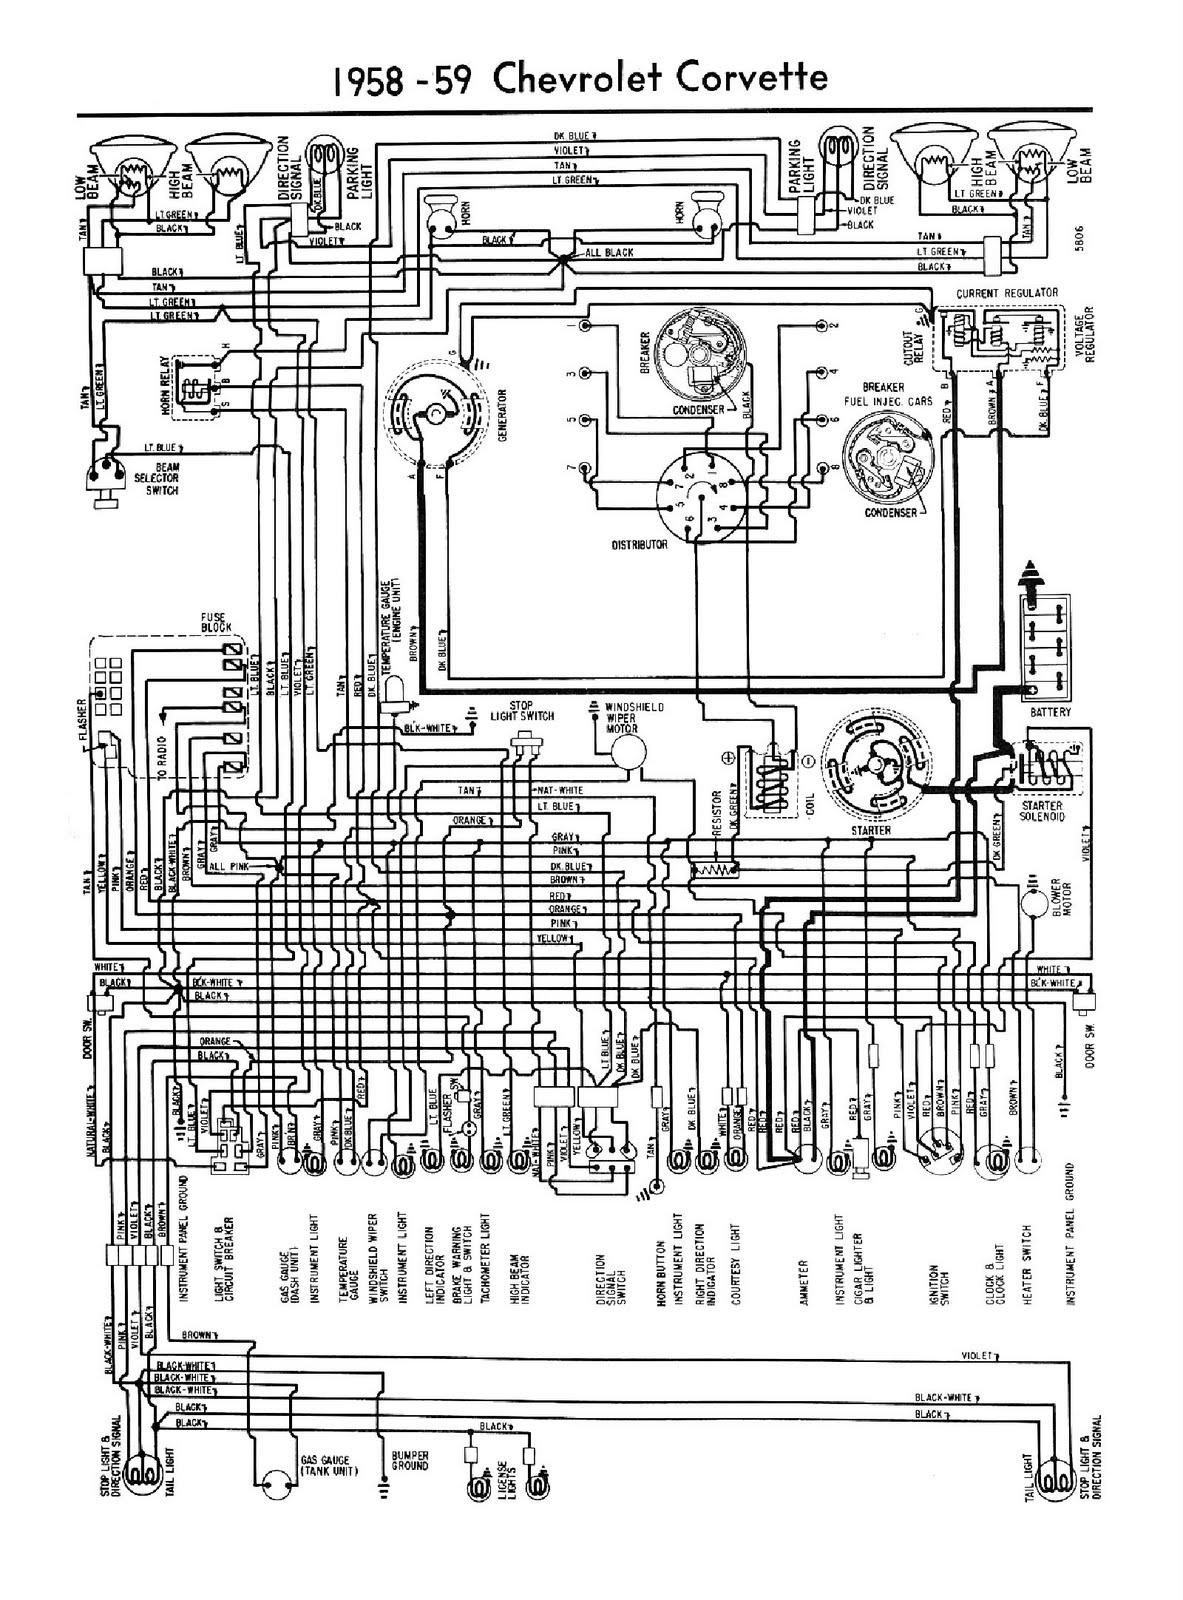 1958 ford wiring diagram 1958 pontiac wiring diagram 1958 ford truck ignition wiring diagram #9